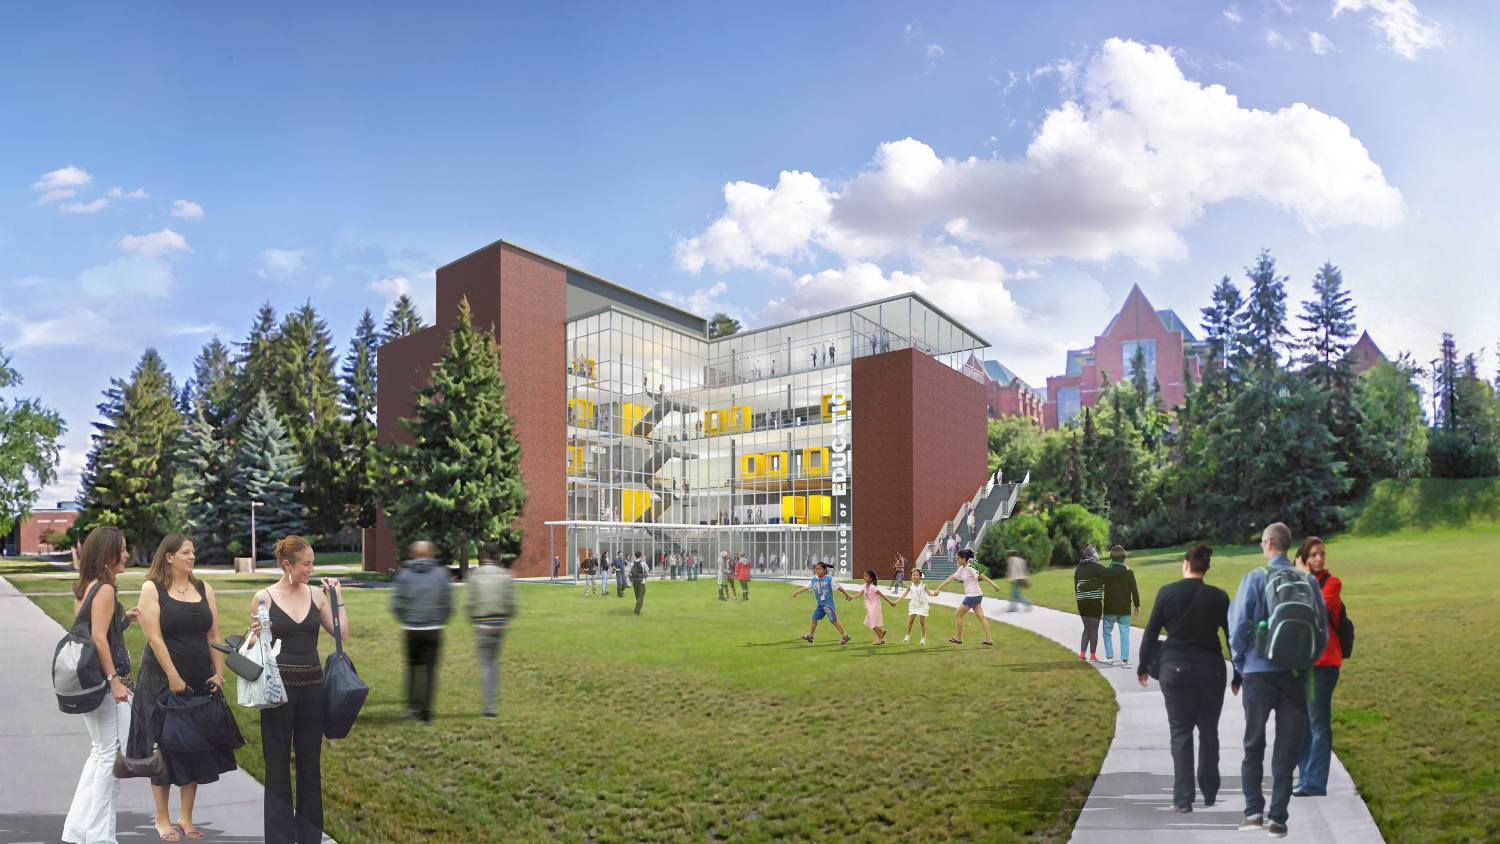 An artist rendering of the new education building design.